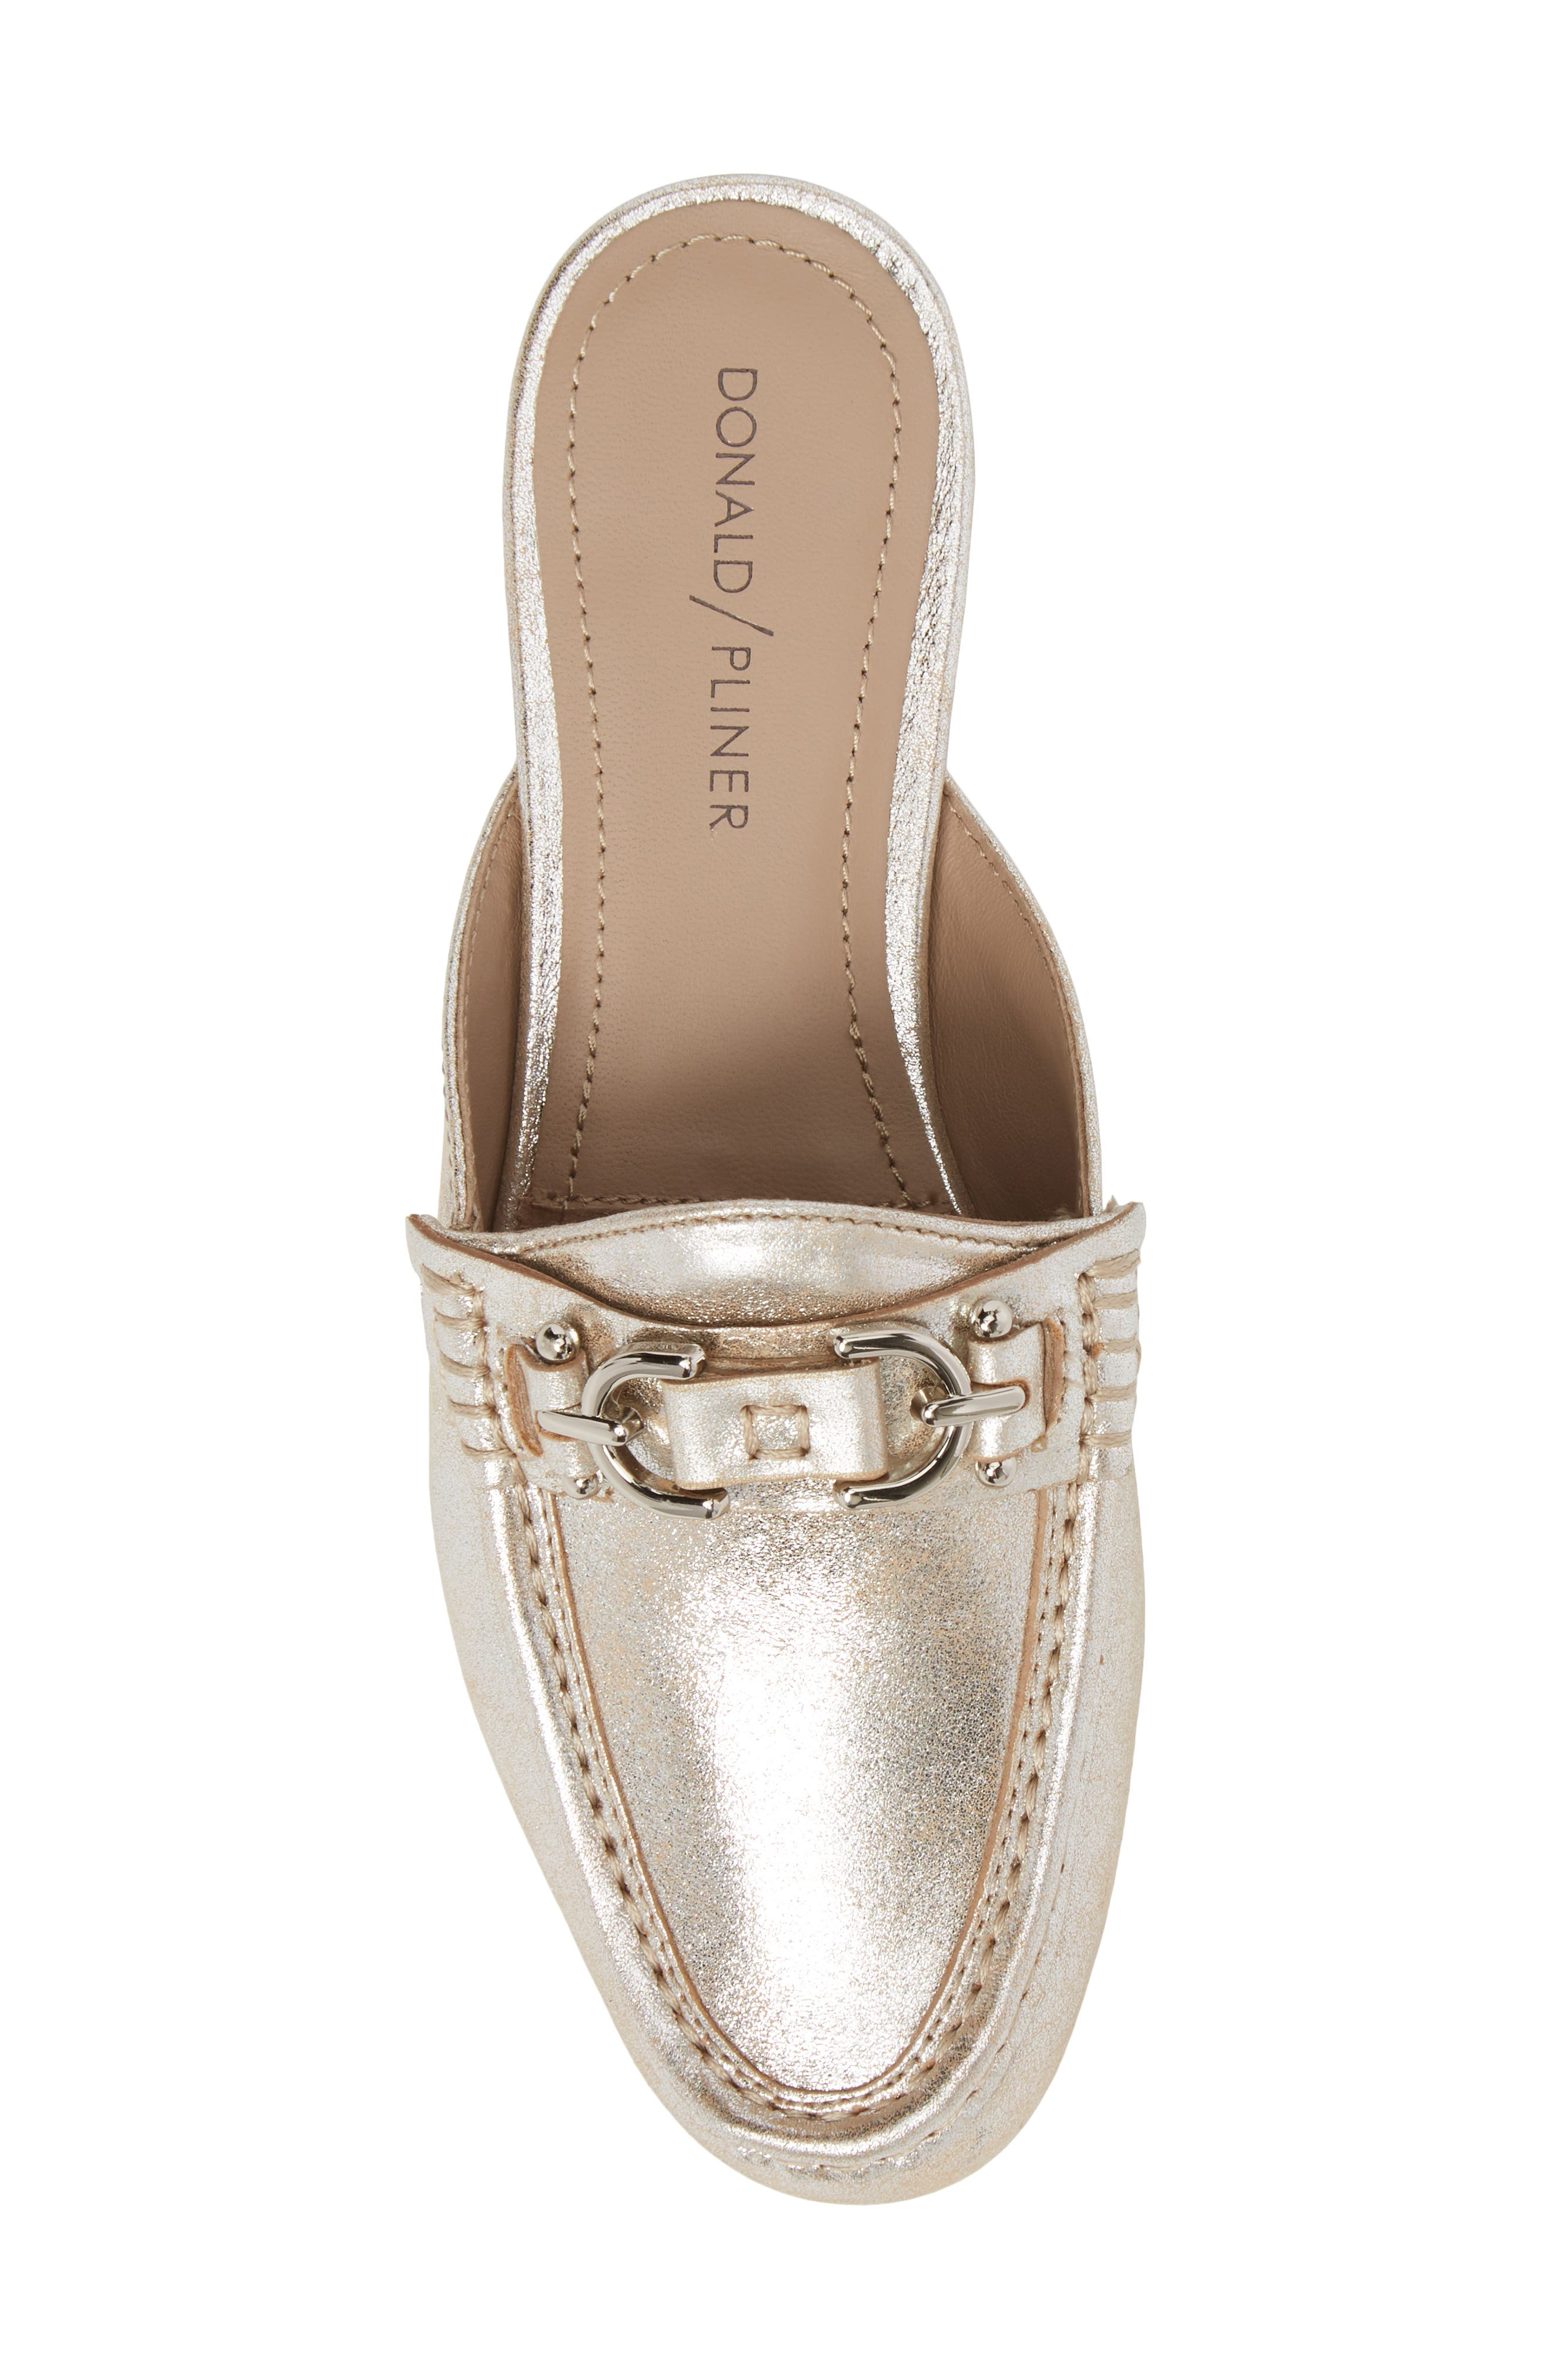 Sylvi Loafer Mule,                             Alternate thumbnail 5, color,                             Silver Leather